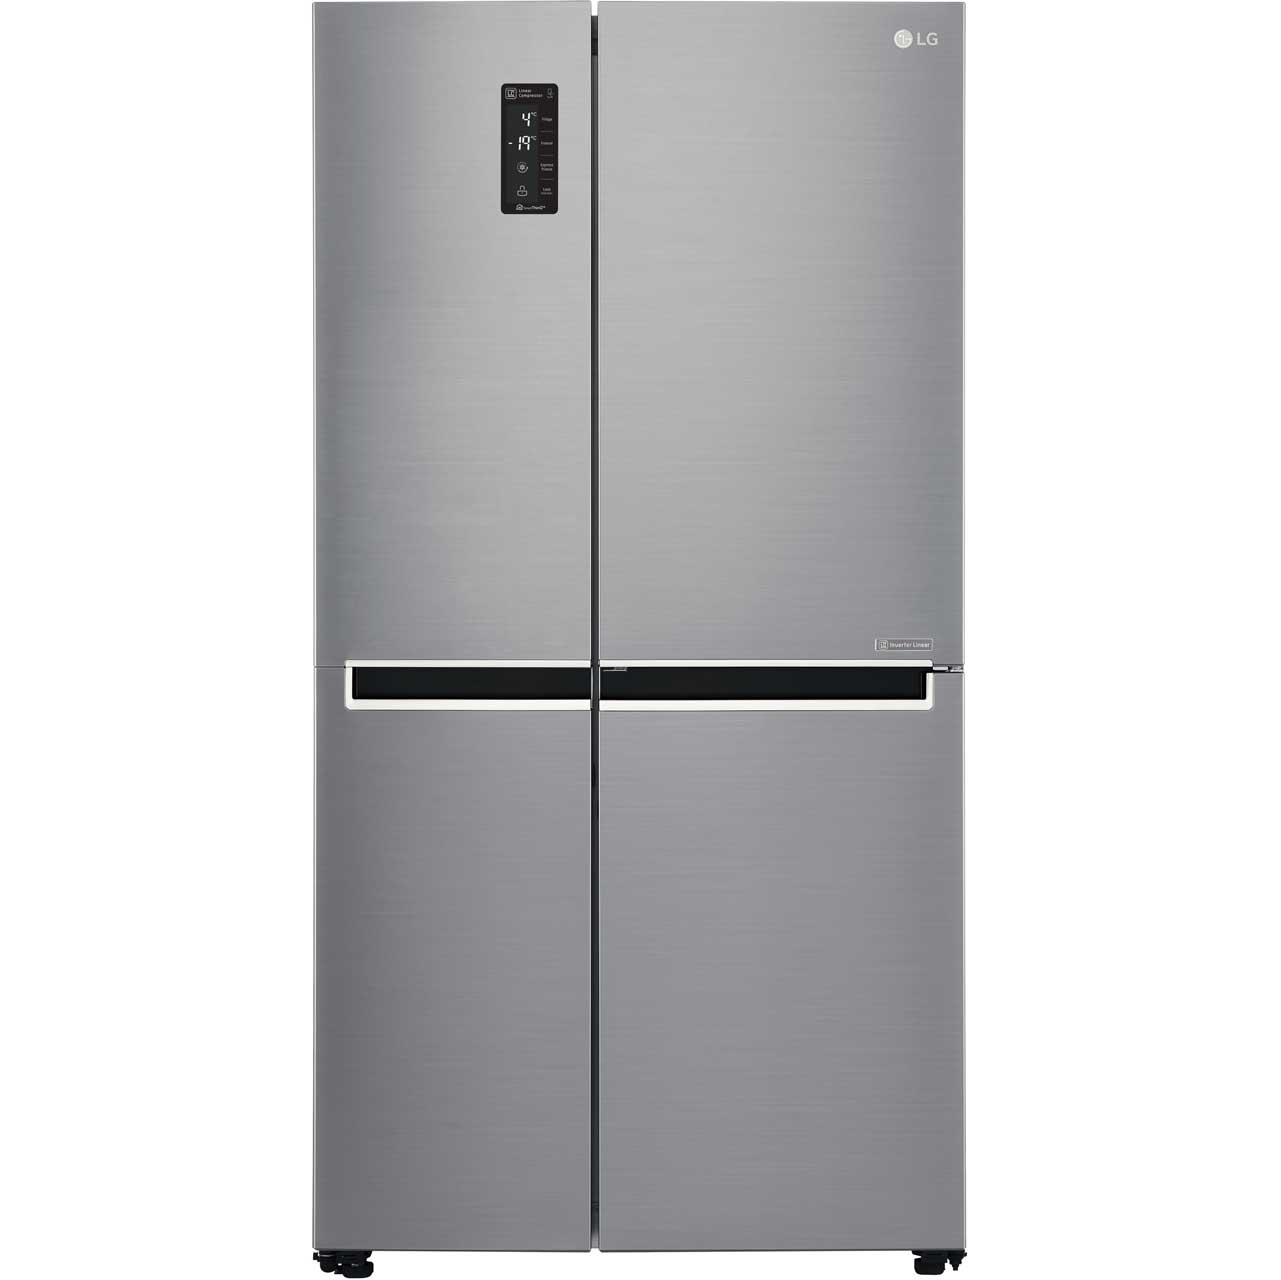 LG GSB760PZXV American Fridge Freezer - Stainless Steel